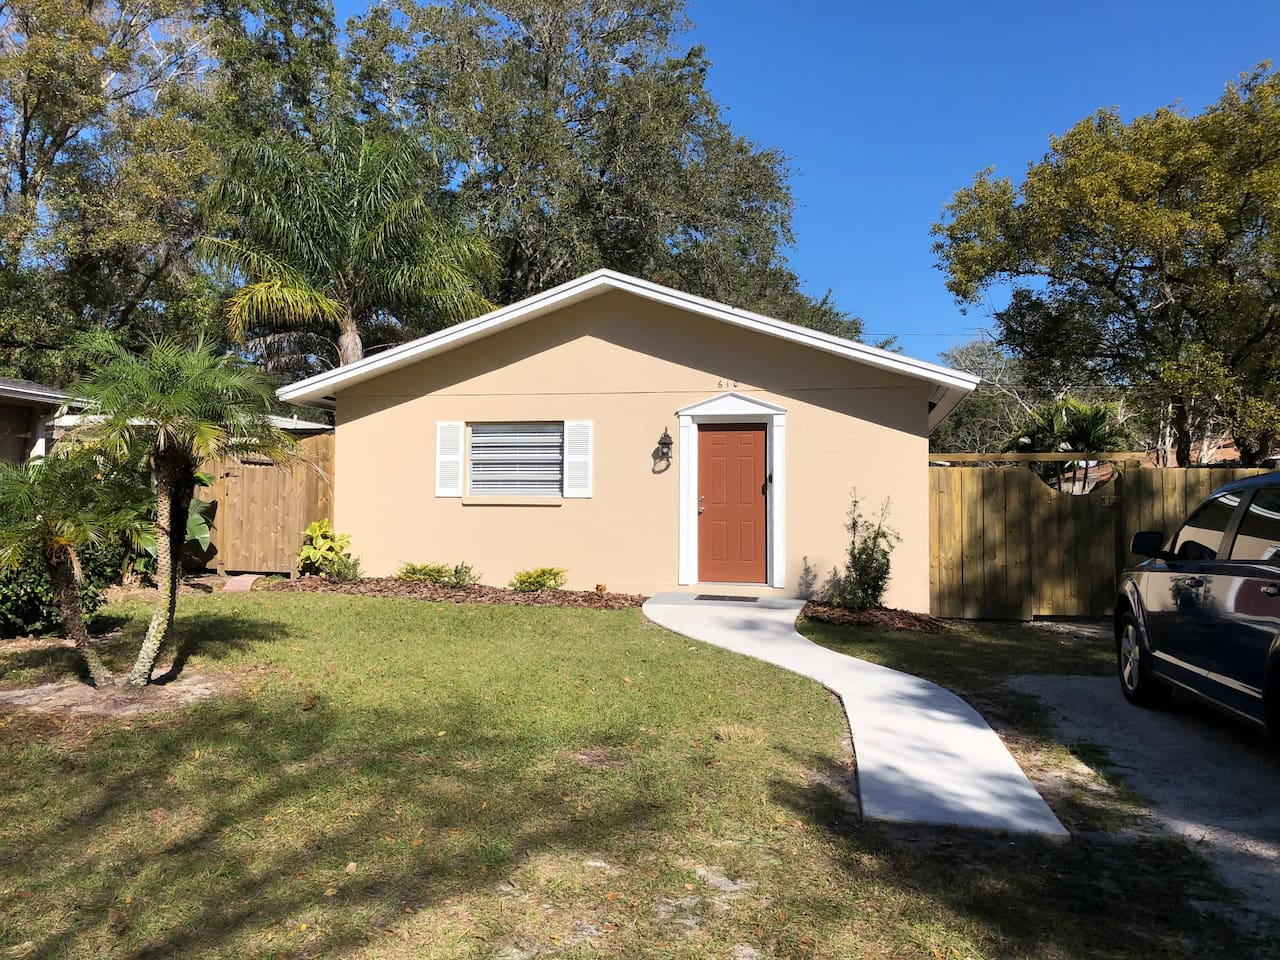 Fully remodeled rancher, granite counters & stainless appliances. Two bedroom, 2 full bath, washer/dryer. Fenced in backyard with grill!